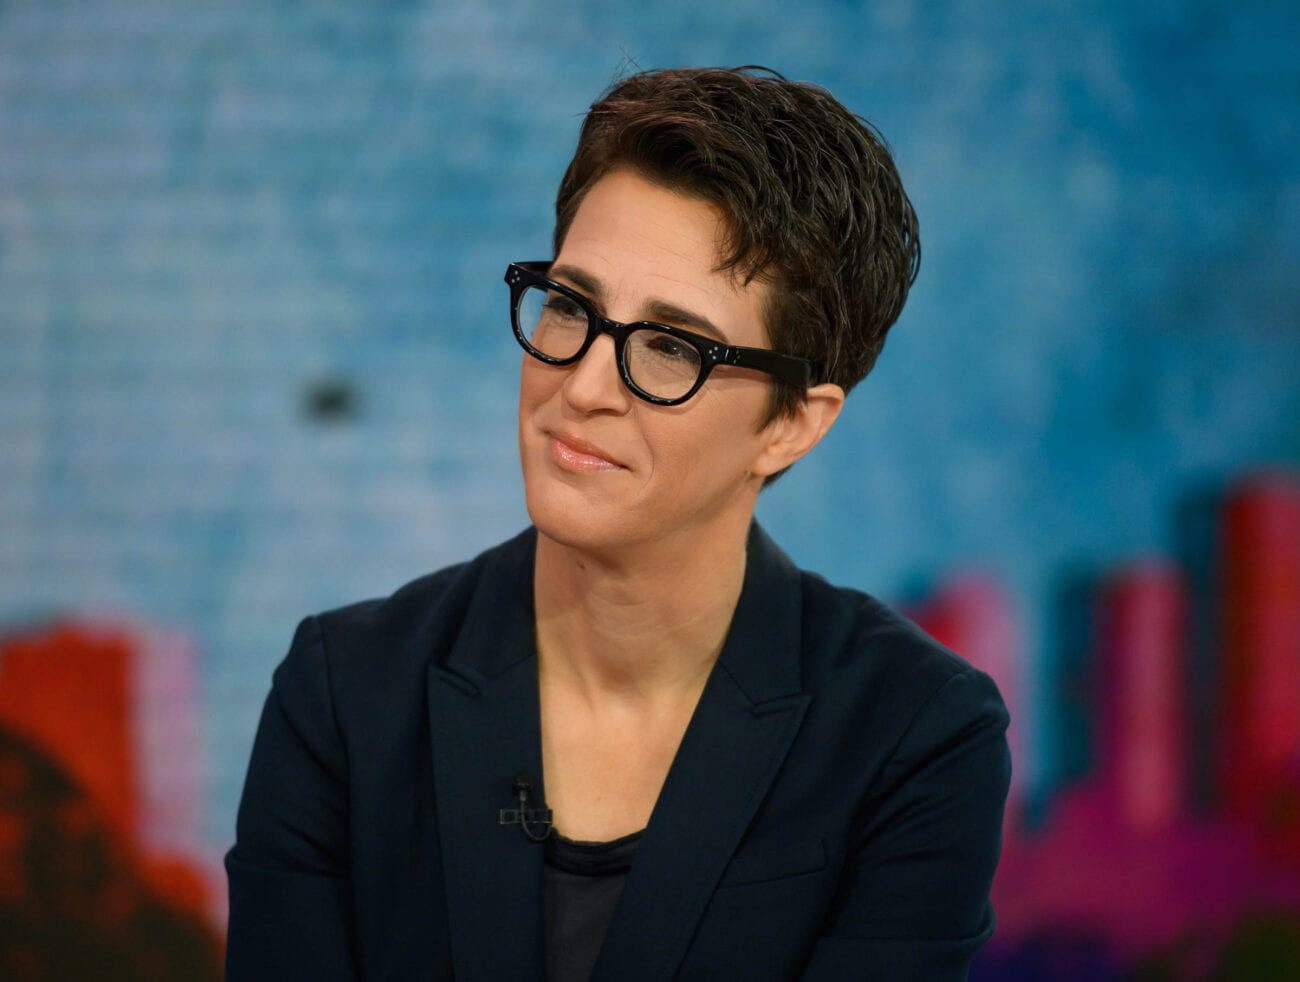 The 'Rachel Maddow Show' has been one of MSNBC's most controversial and top rated programs since 2008. What's the news anchor's net worth?